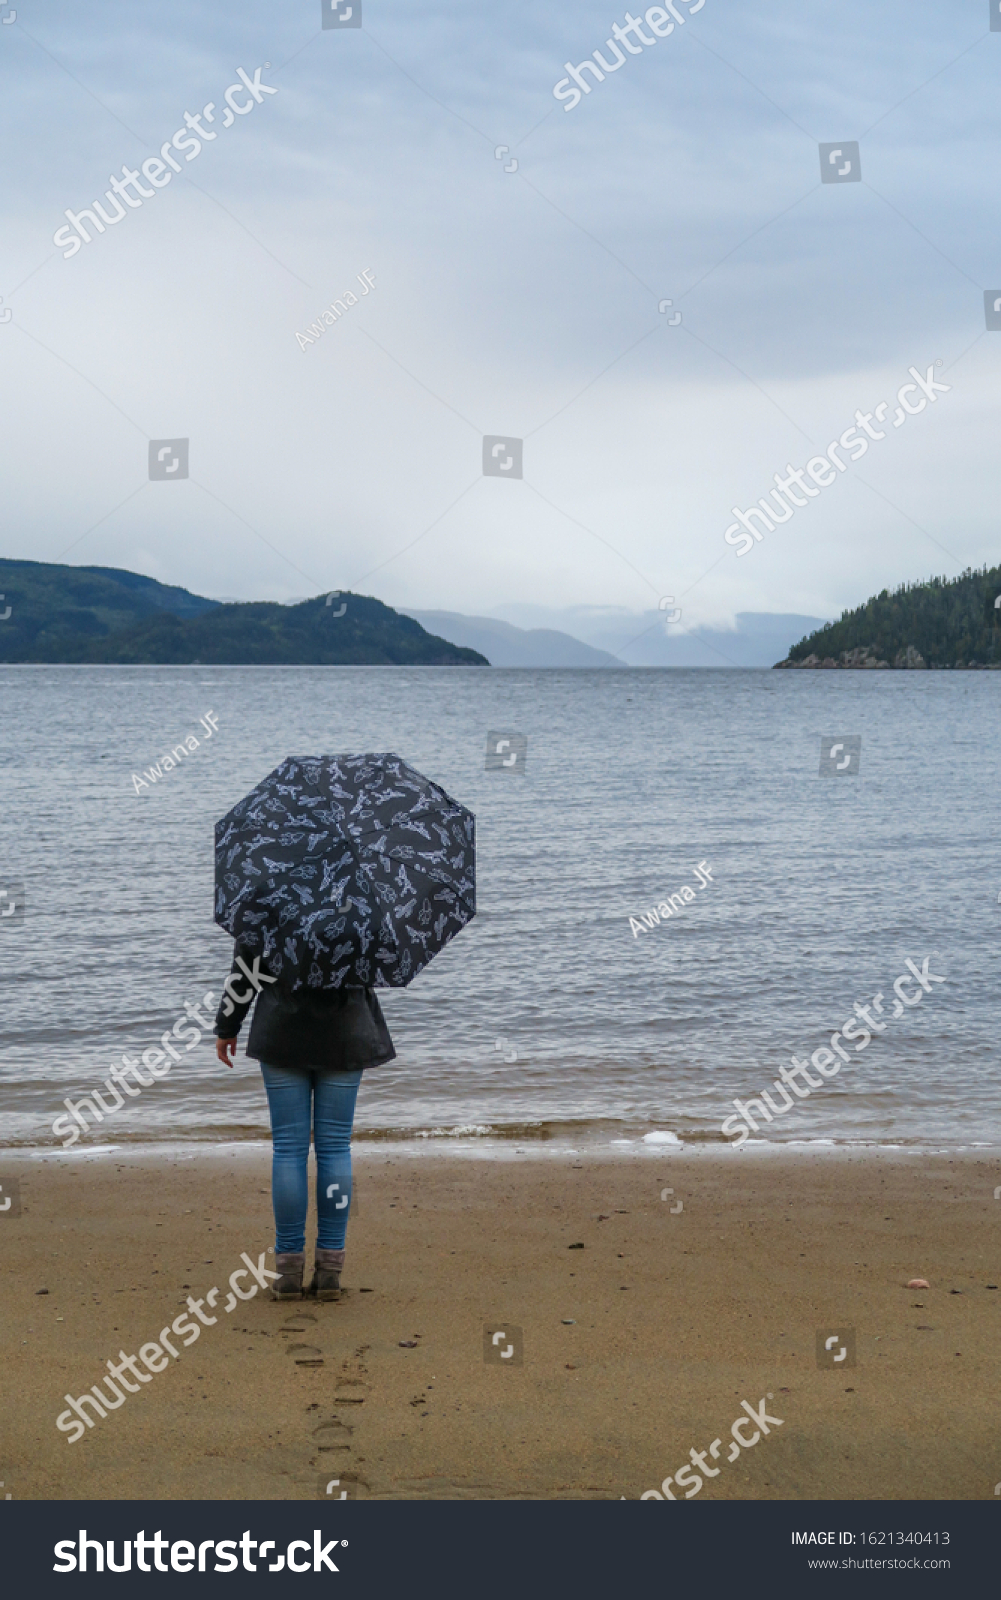 stock-photo-back-view-of-a-woman-standin